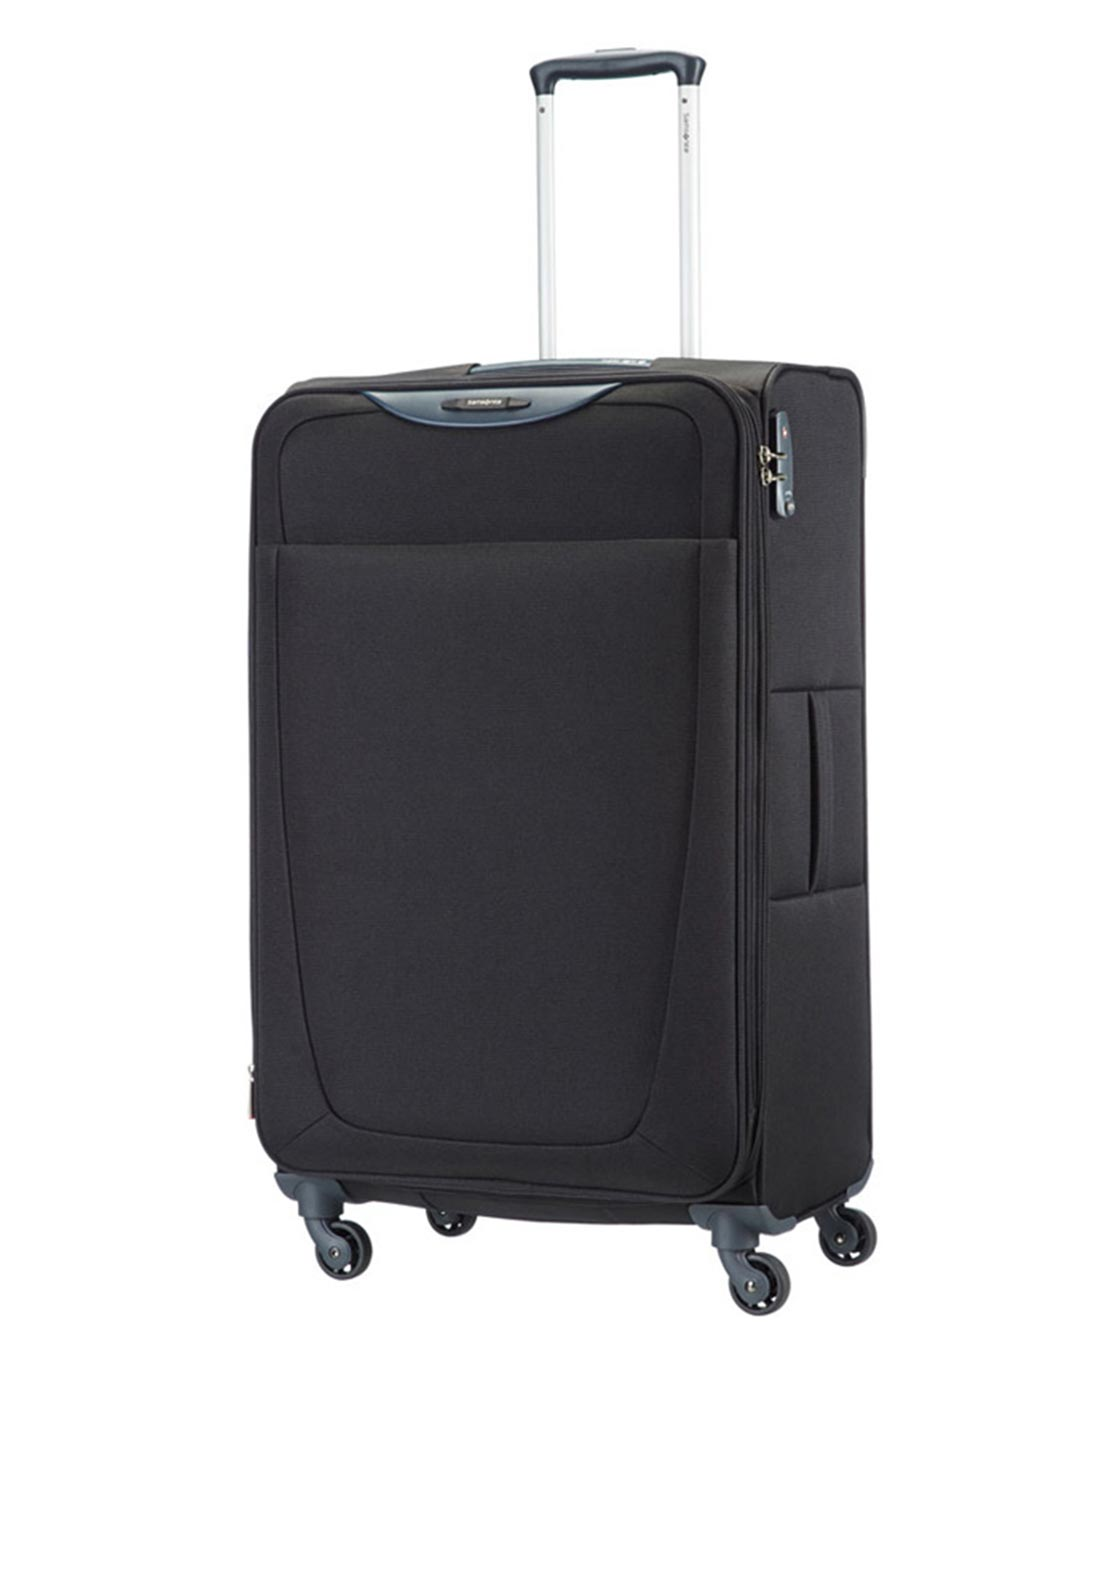 American Tourister San Francisco Spinner Large 79cm Suitcase, Black